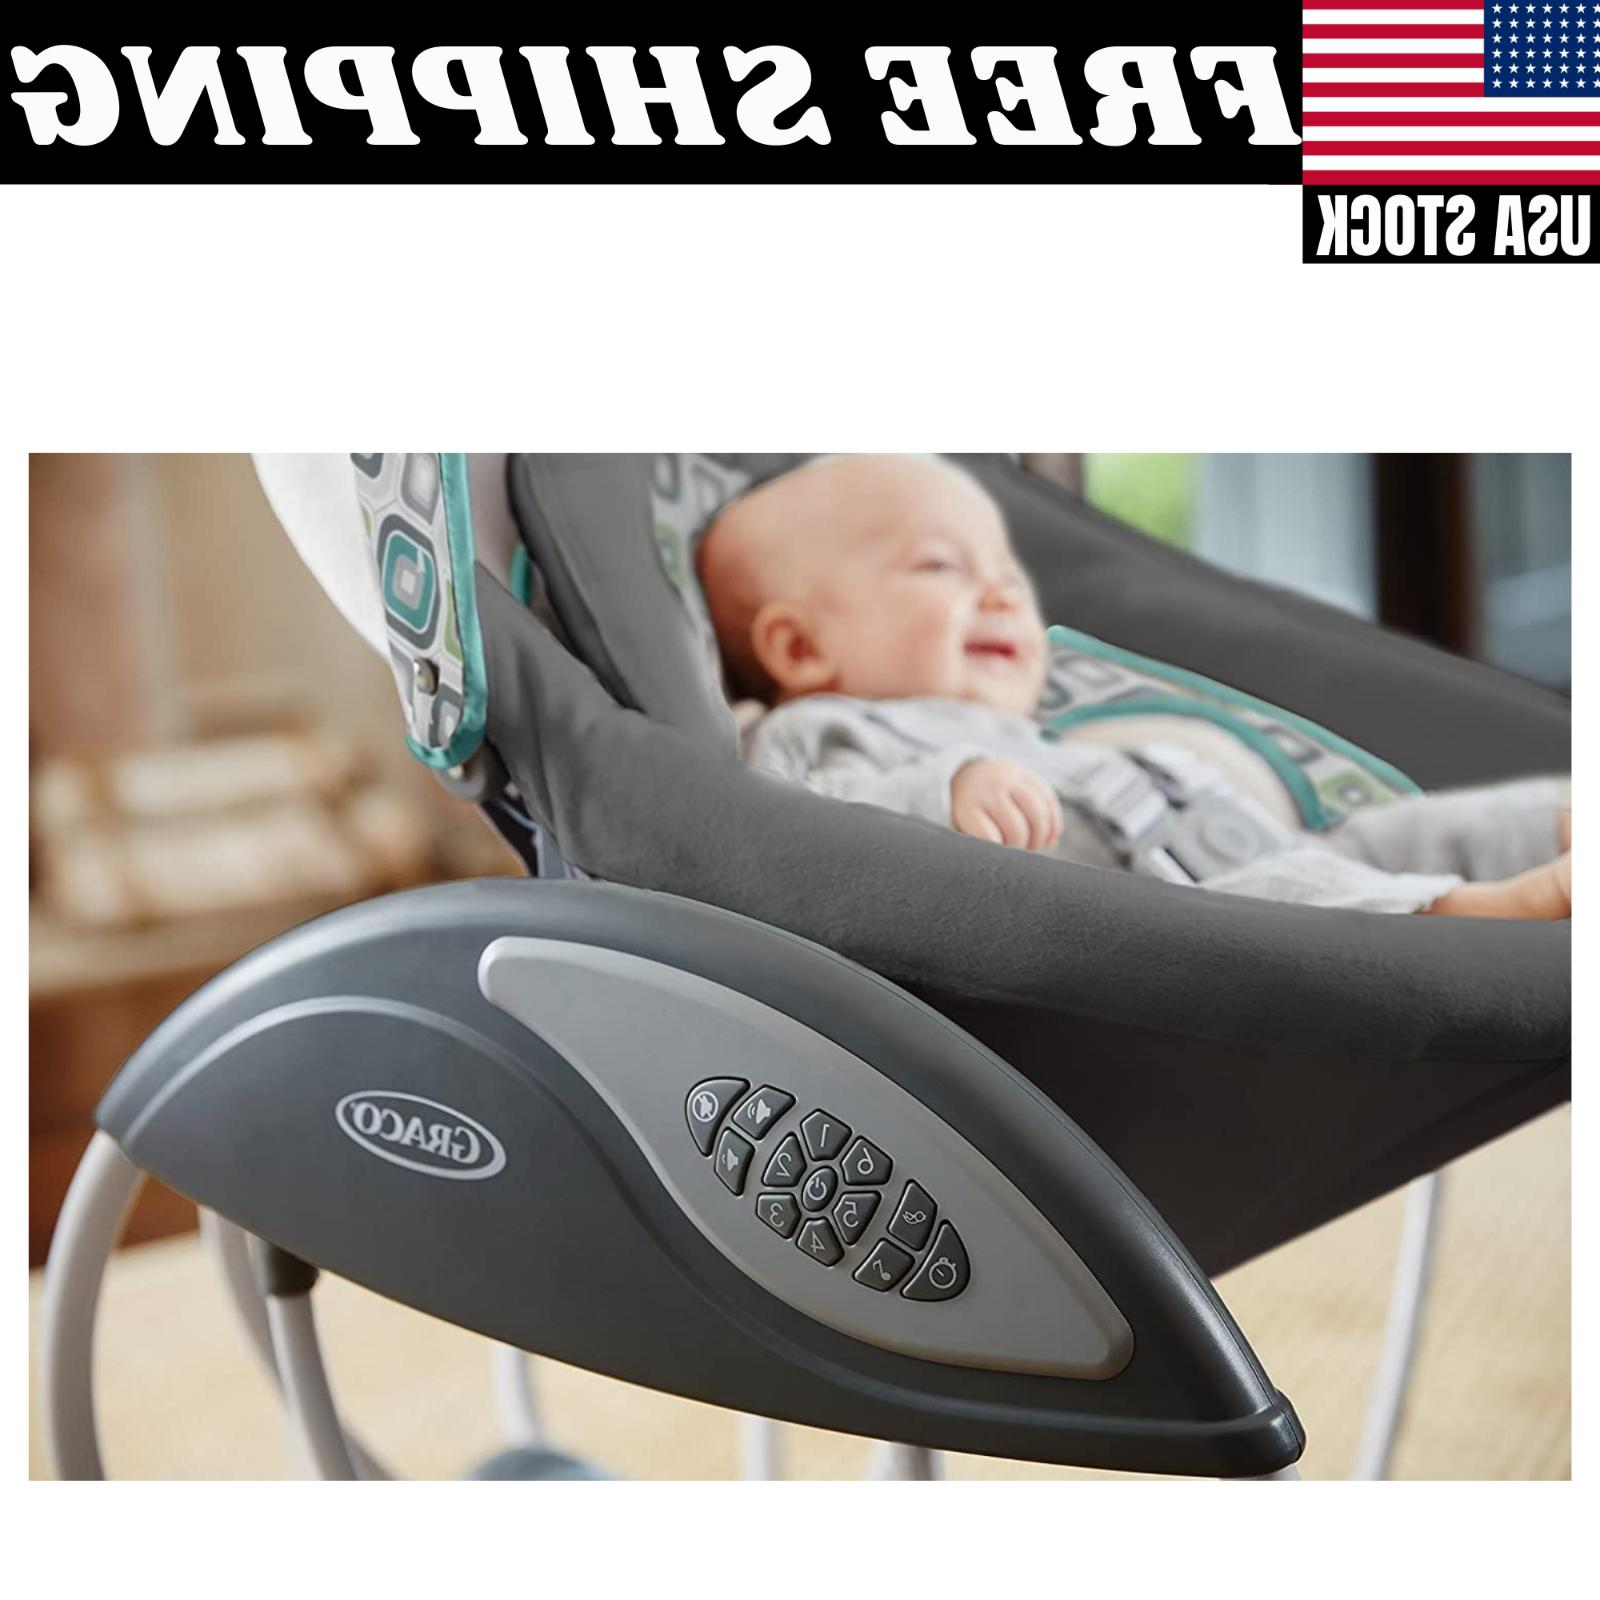 Graco Gliding Baby Swing Plug In or Use Batteries